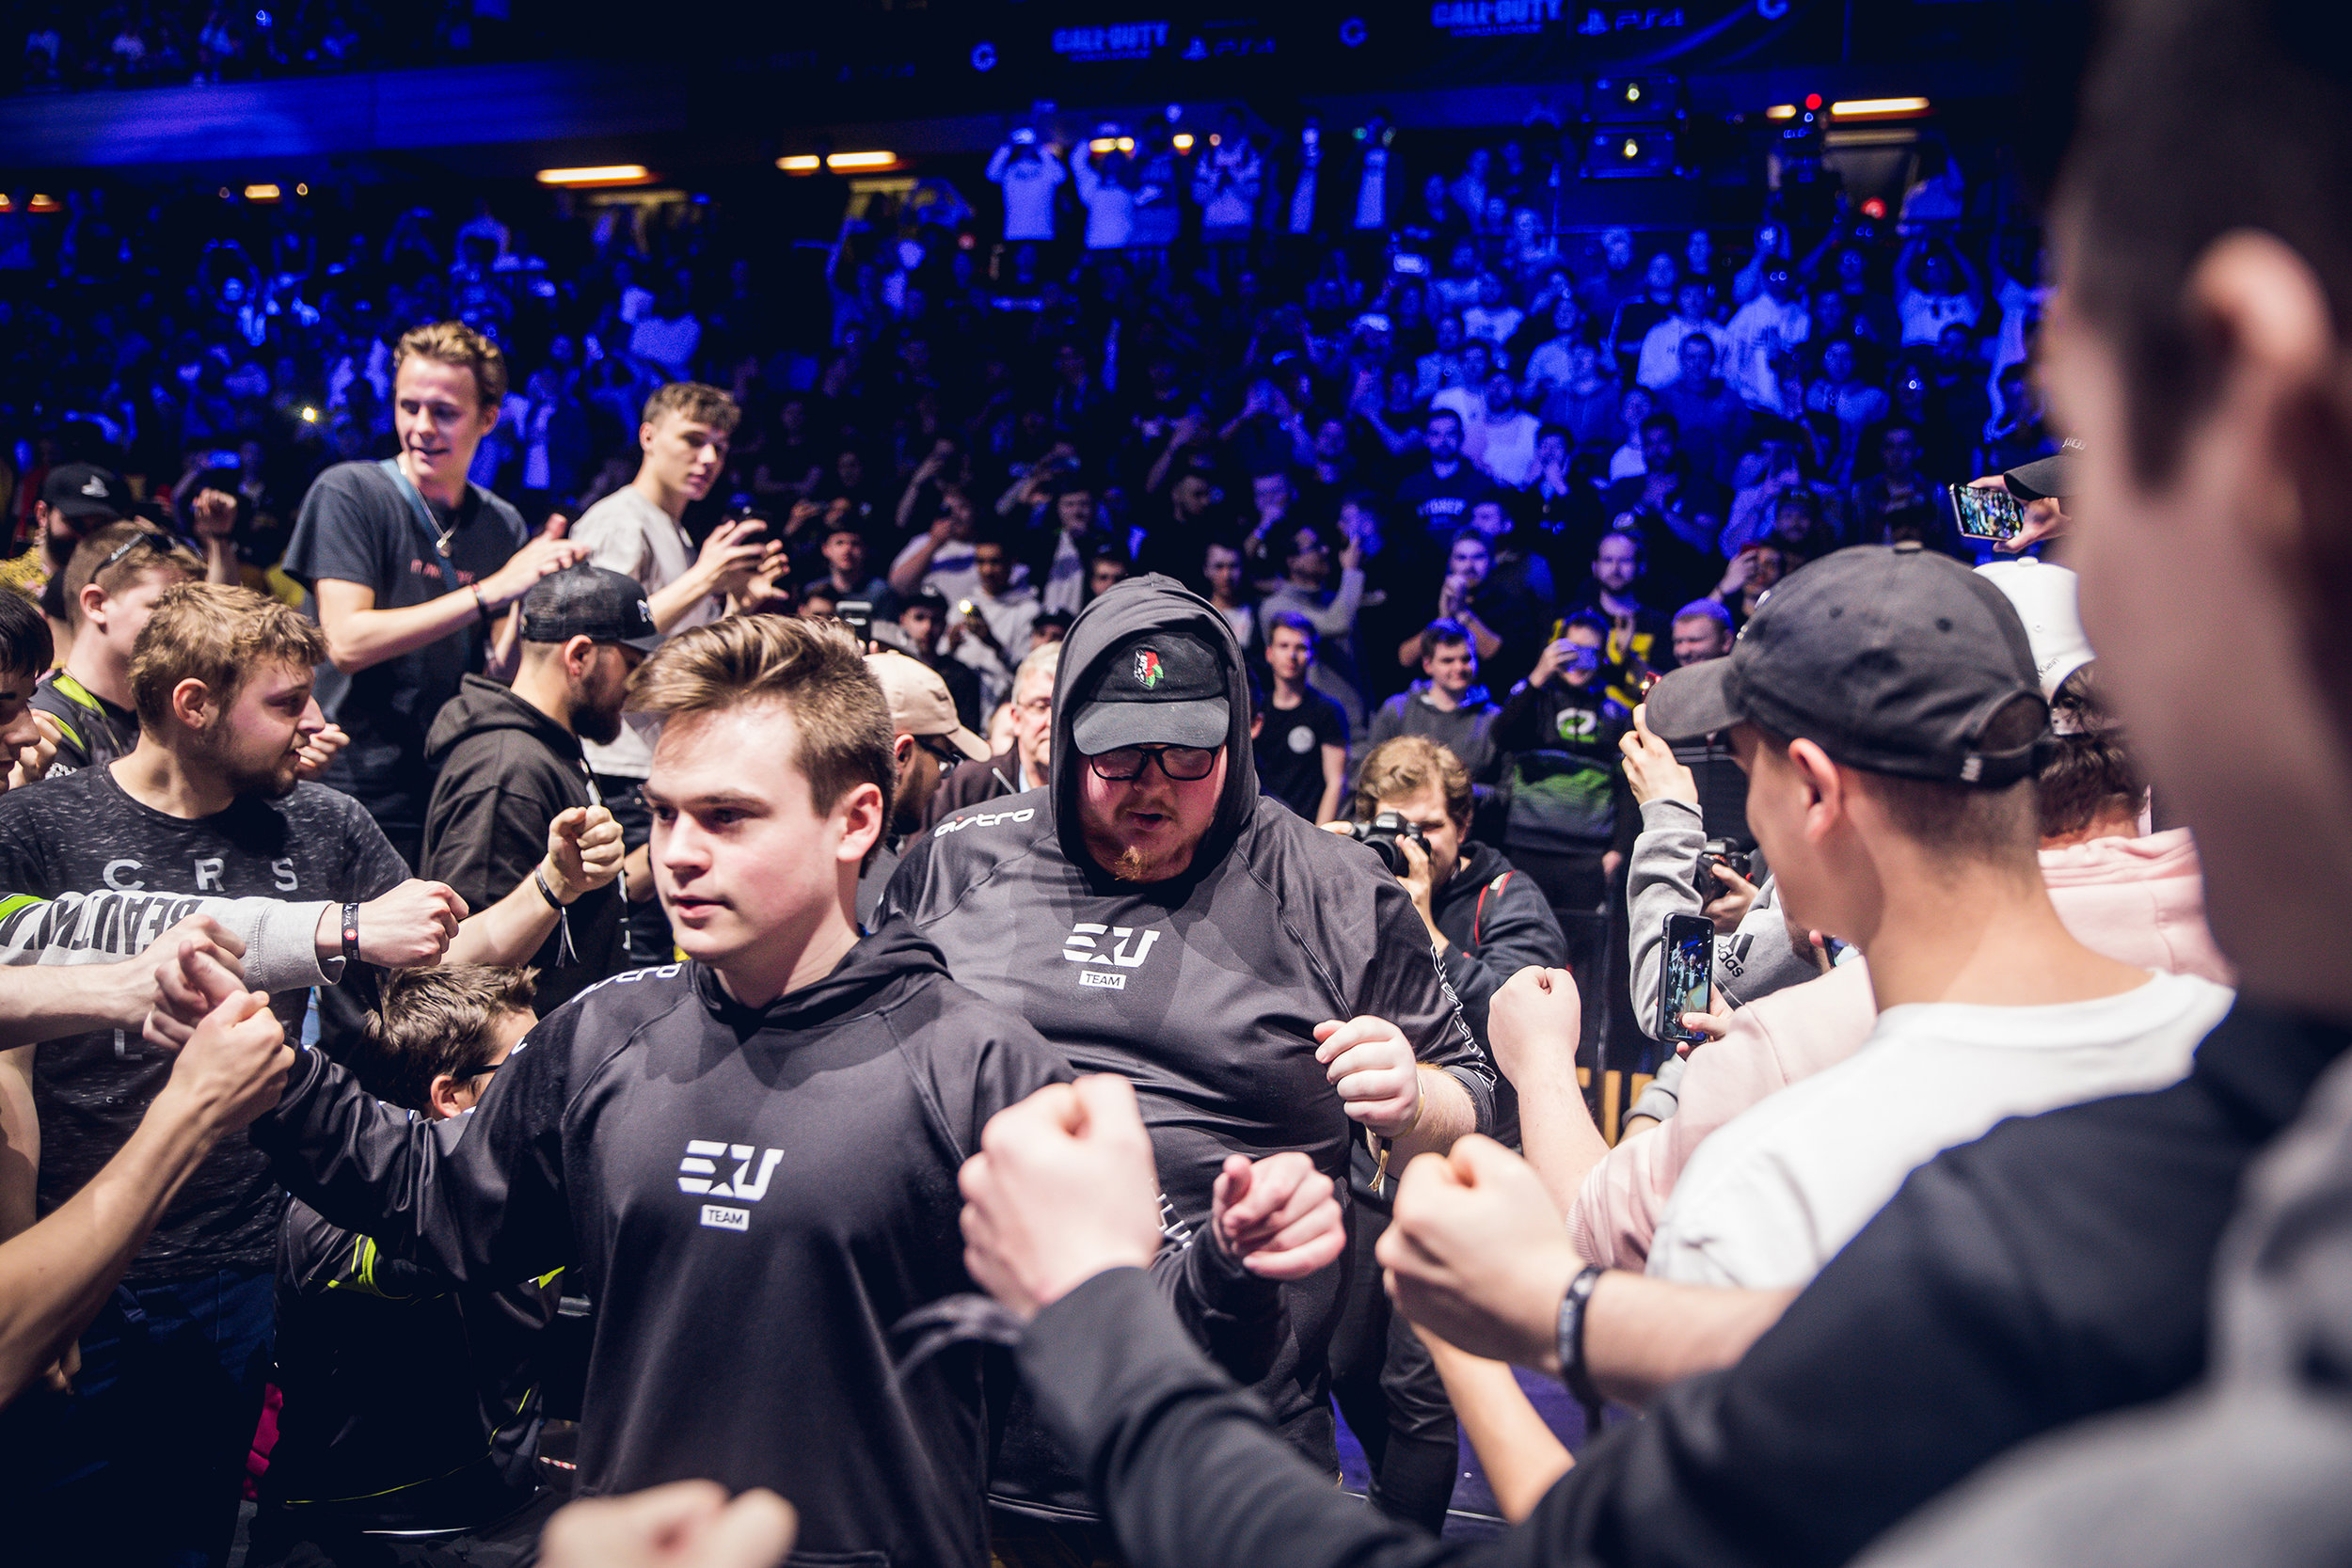 LONDON, ENGLAND - May 5, 2019: eUnited headed on stage for CWL final against 100 Thieves at Copper Box Arena on May 3, 2019 in London, England. (Photo by Joao Ferreira/ESPAT Media)